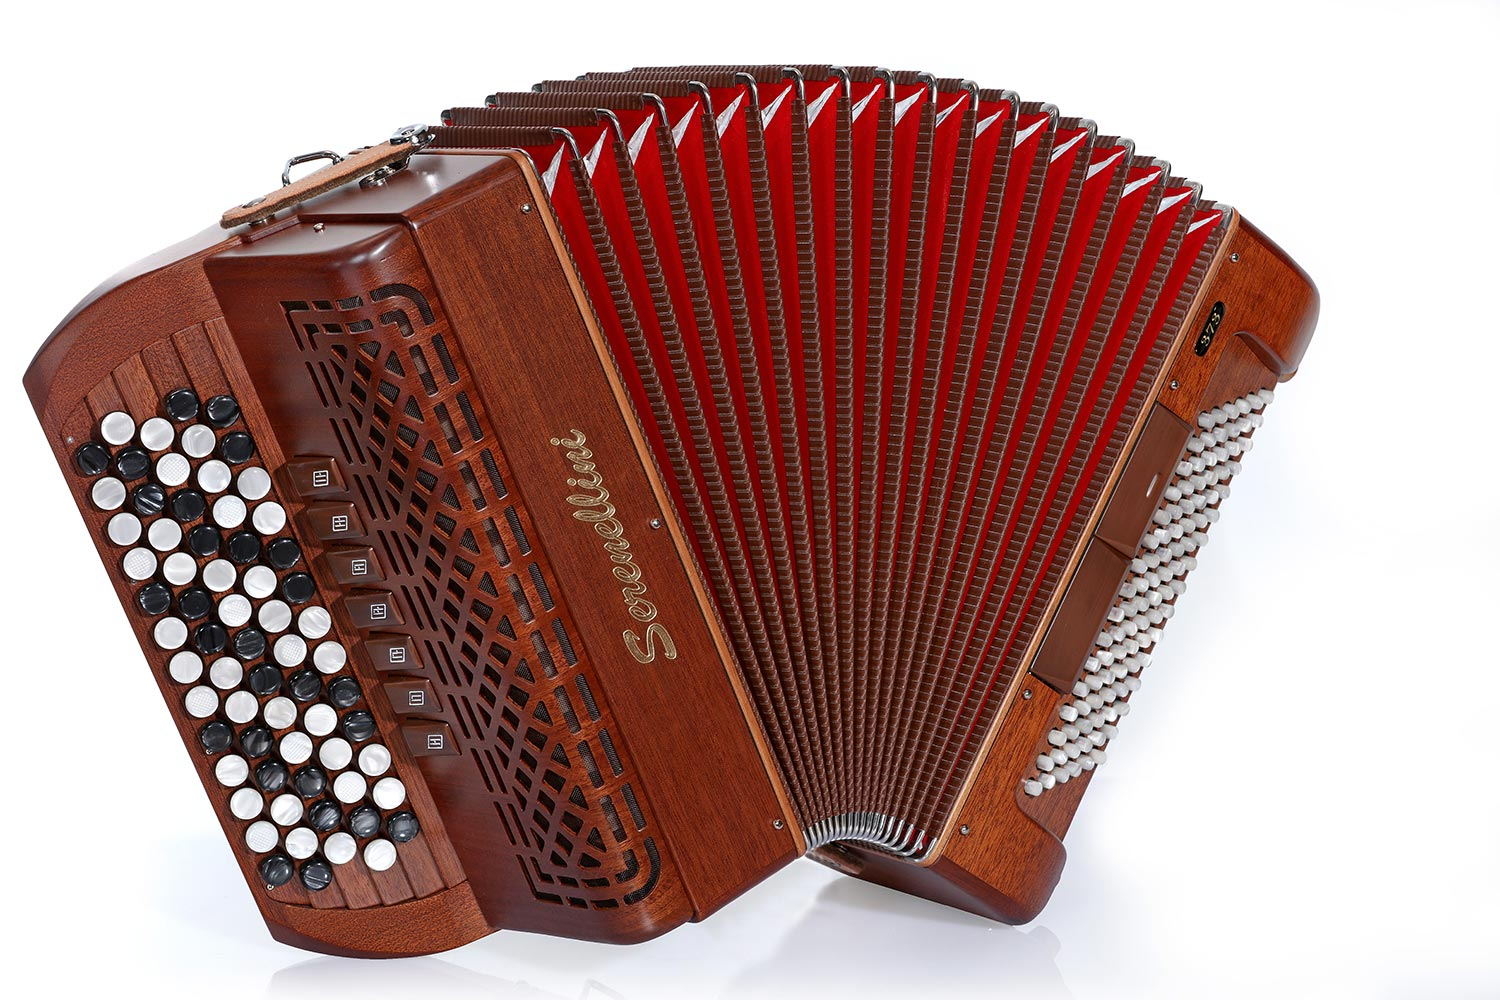 Serenellini 373MW chromatic accordion